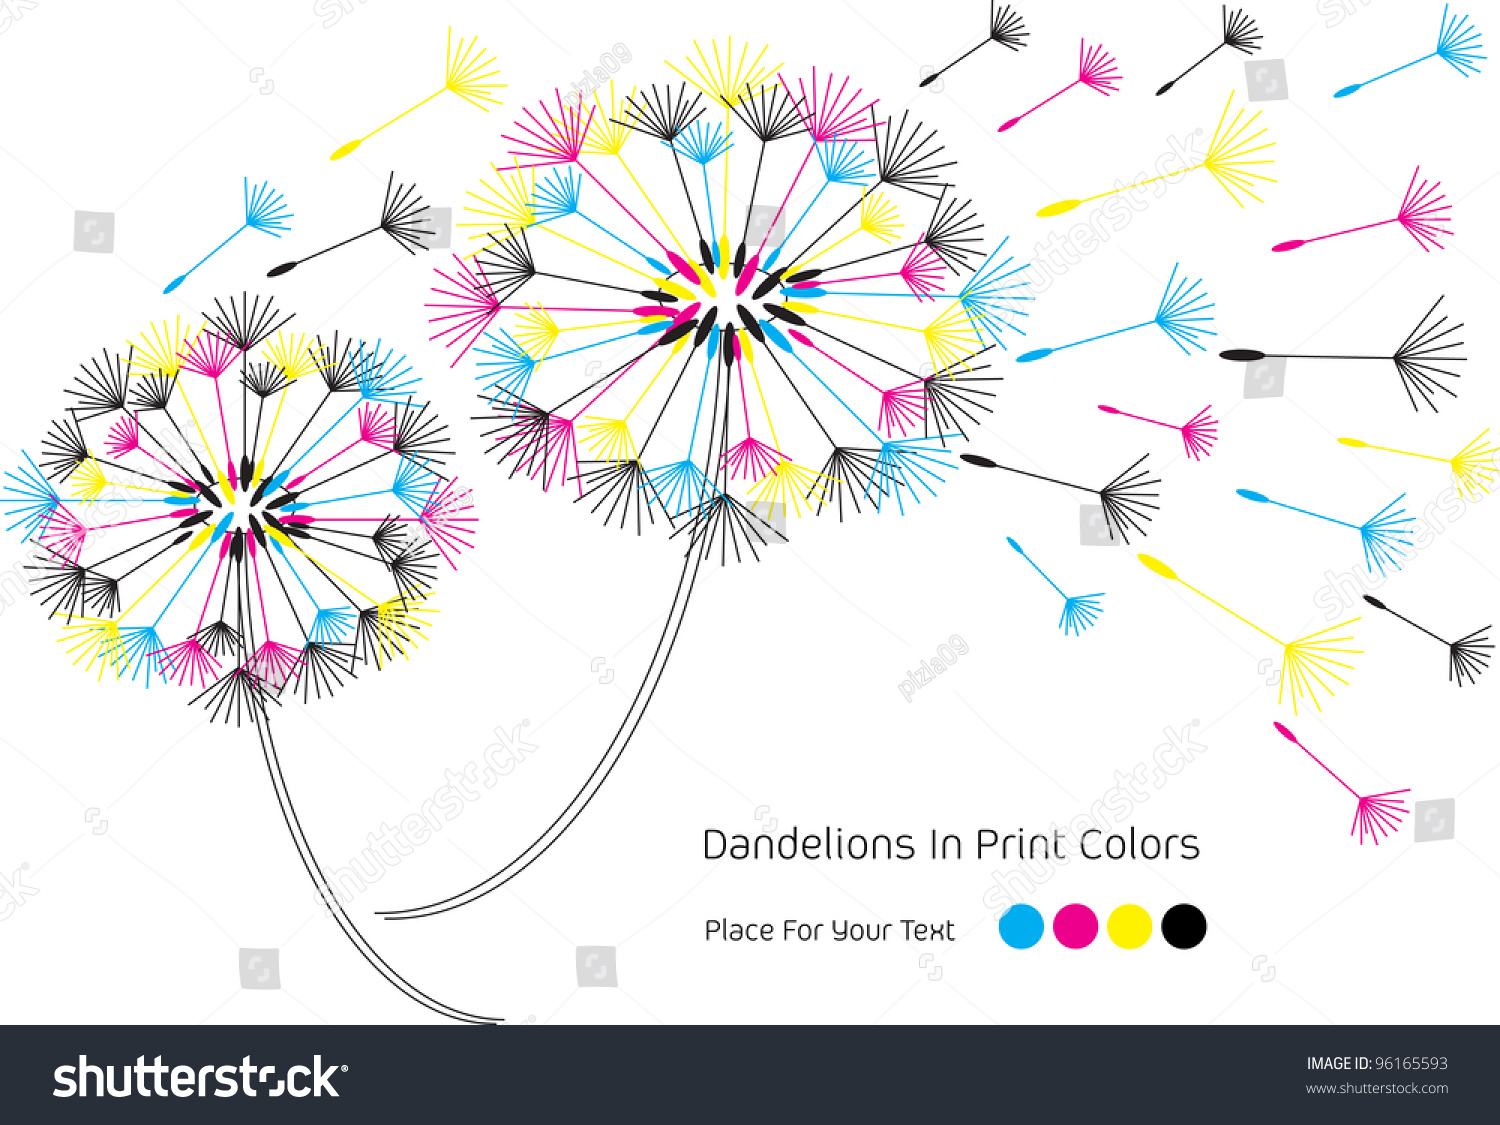 Vector Illustration With Dandelion Flowers And Seeds In